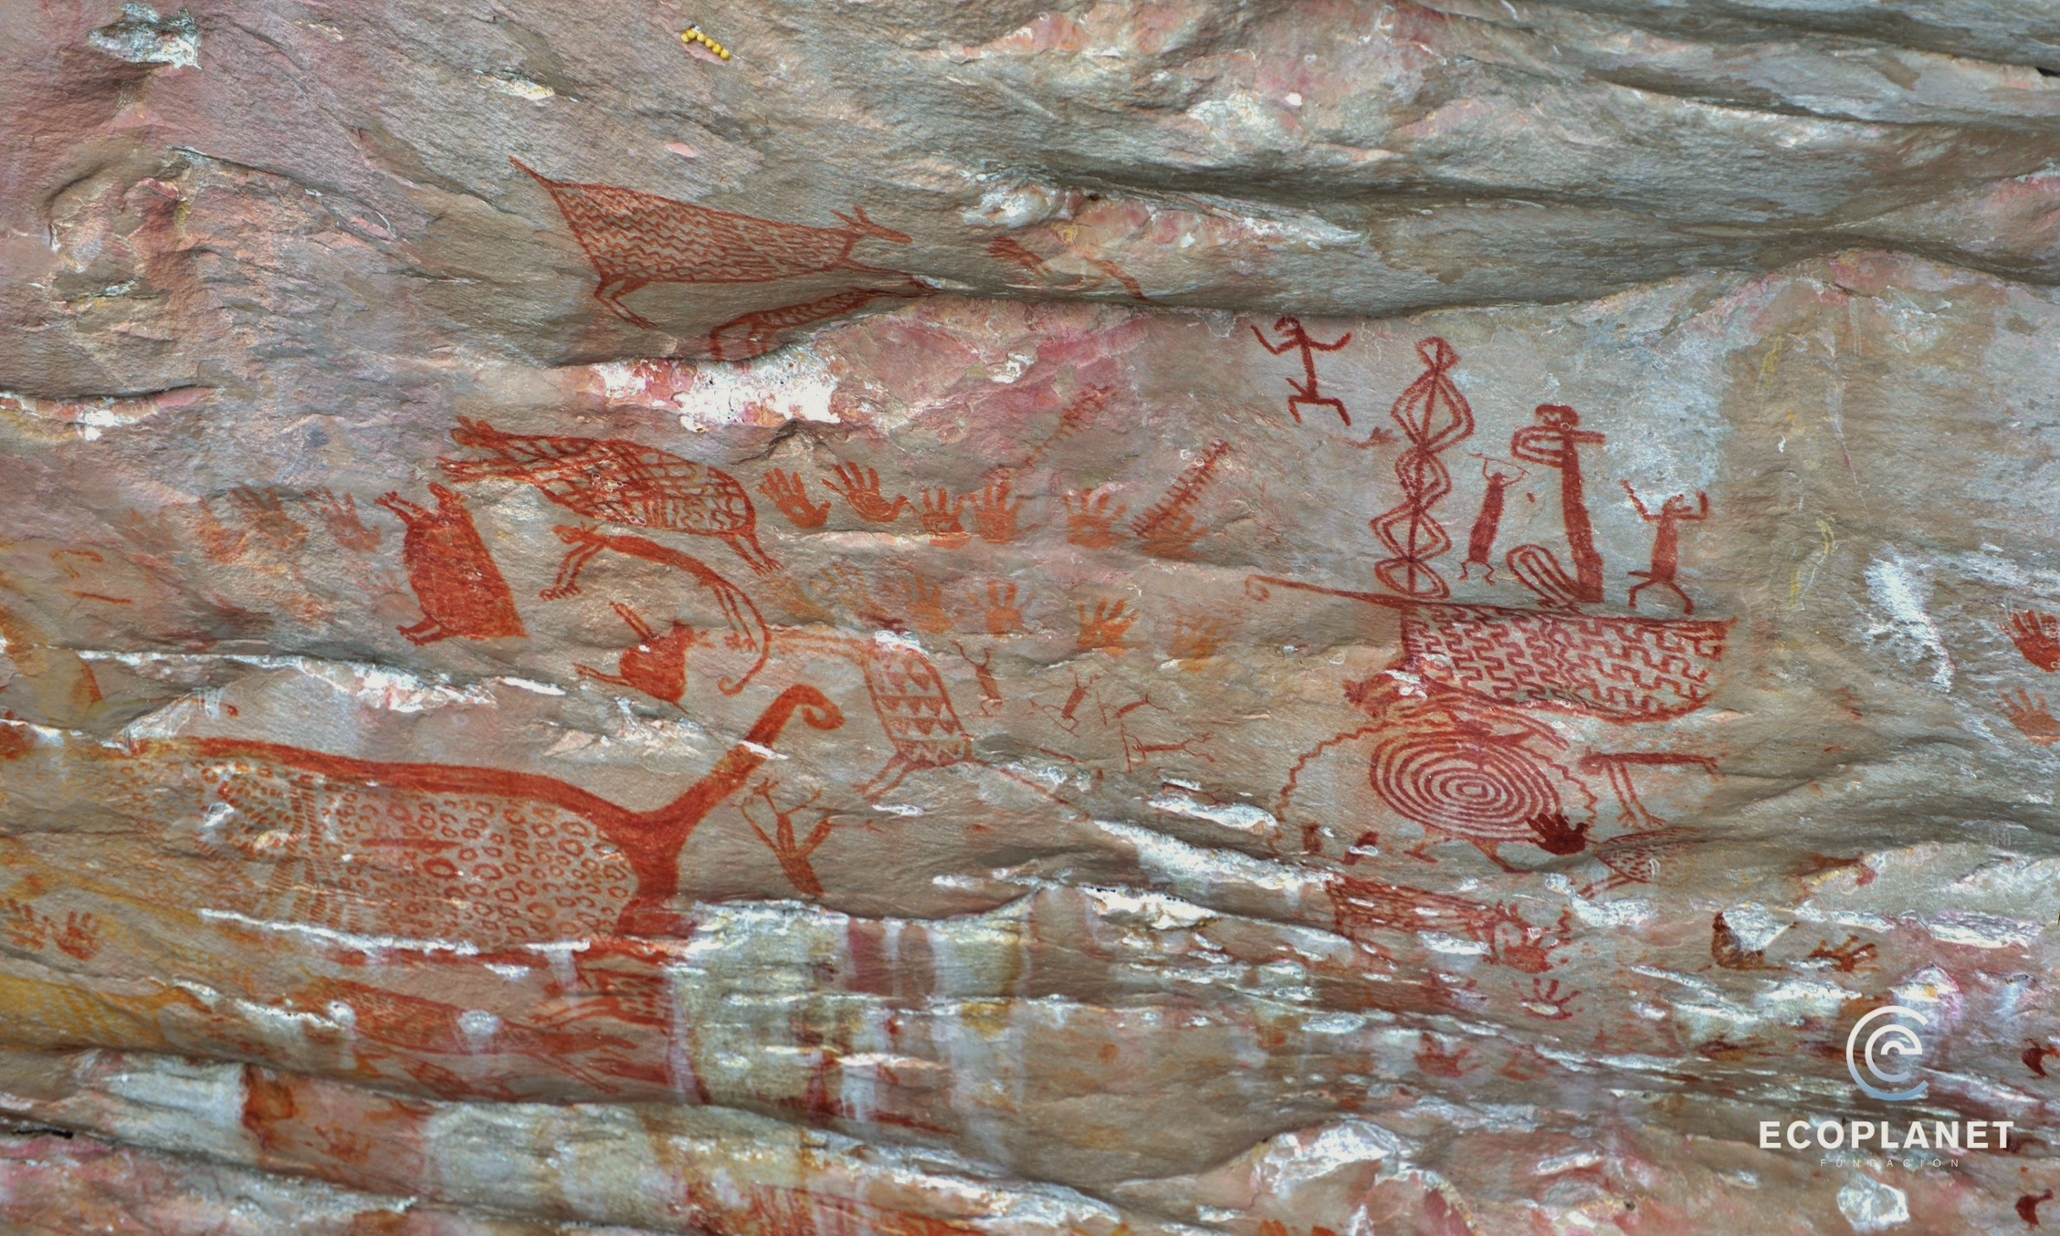 Cave Paintings The Amazon, Colombia: Stunning Amazonian Prehistoric Rock Art | WilderUtopia.com